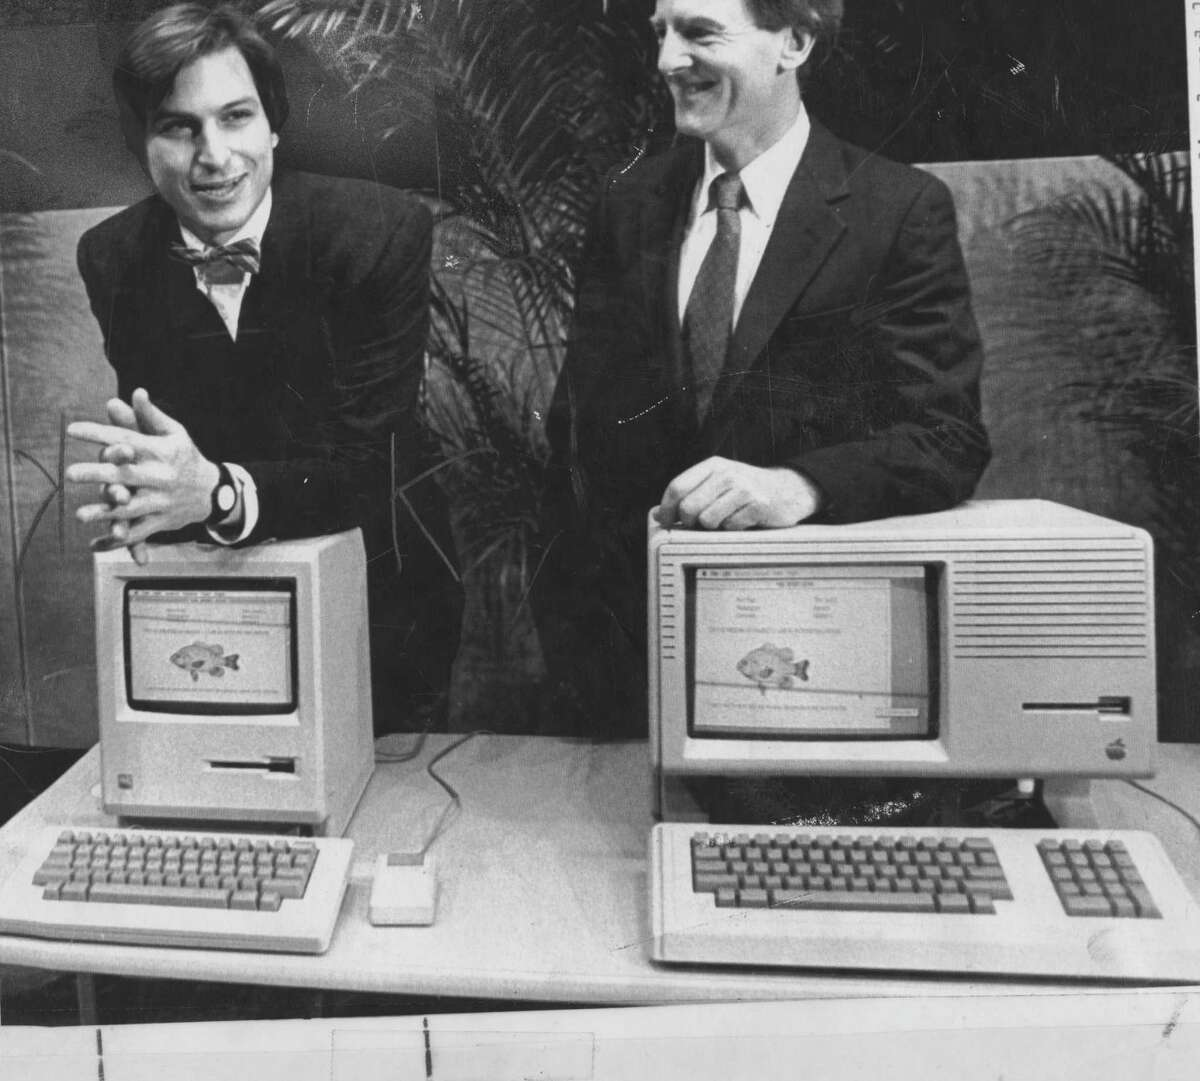 Apple Chairman Steve Jobs with the Macintosh computer, and Apple President John Sculley with the Lisa in 1984. (File Photo)